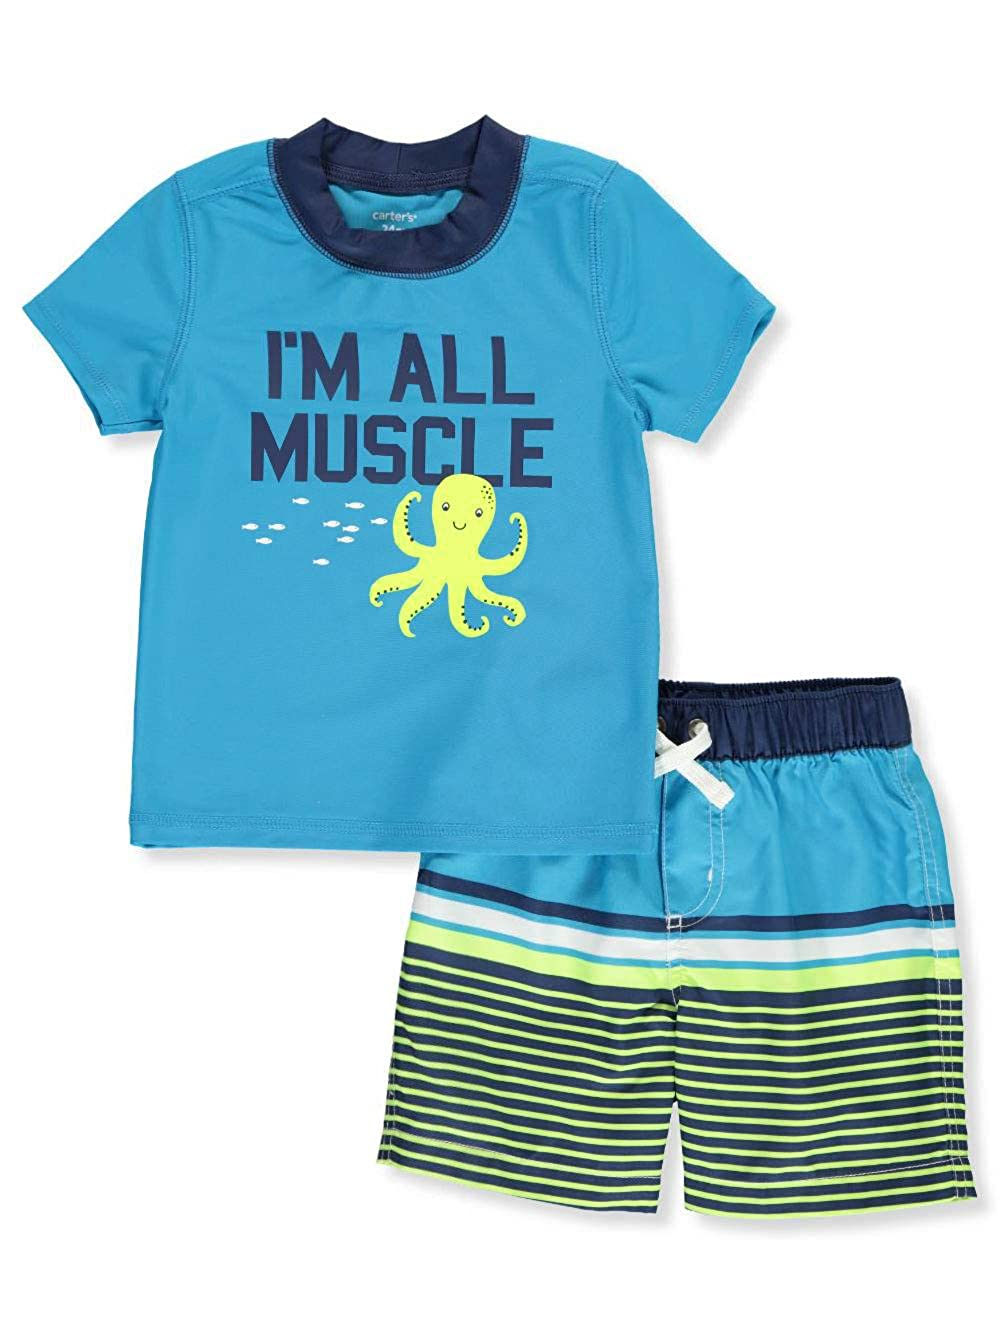 e37b1e8d98 Amazon.com: Carter's Baby Boys' Sailing Swim Set: Clothing